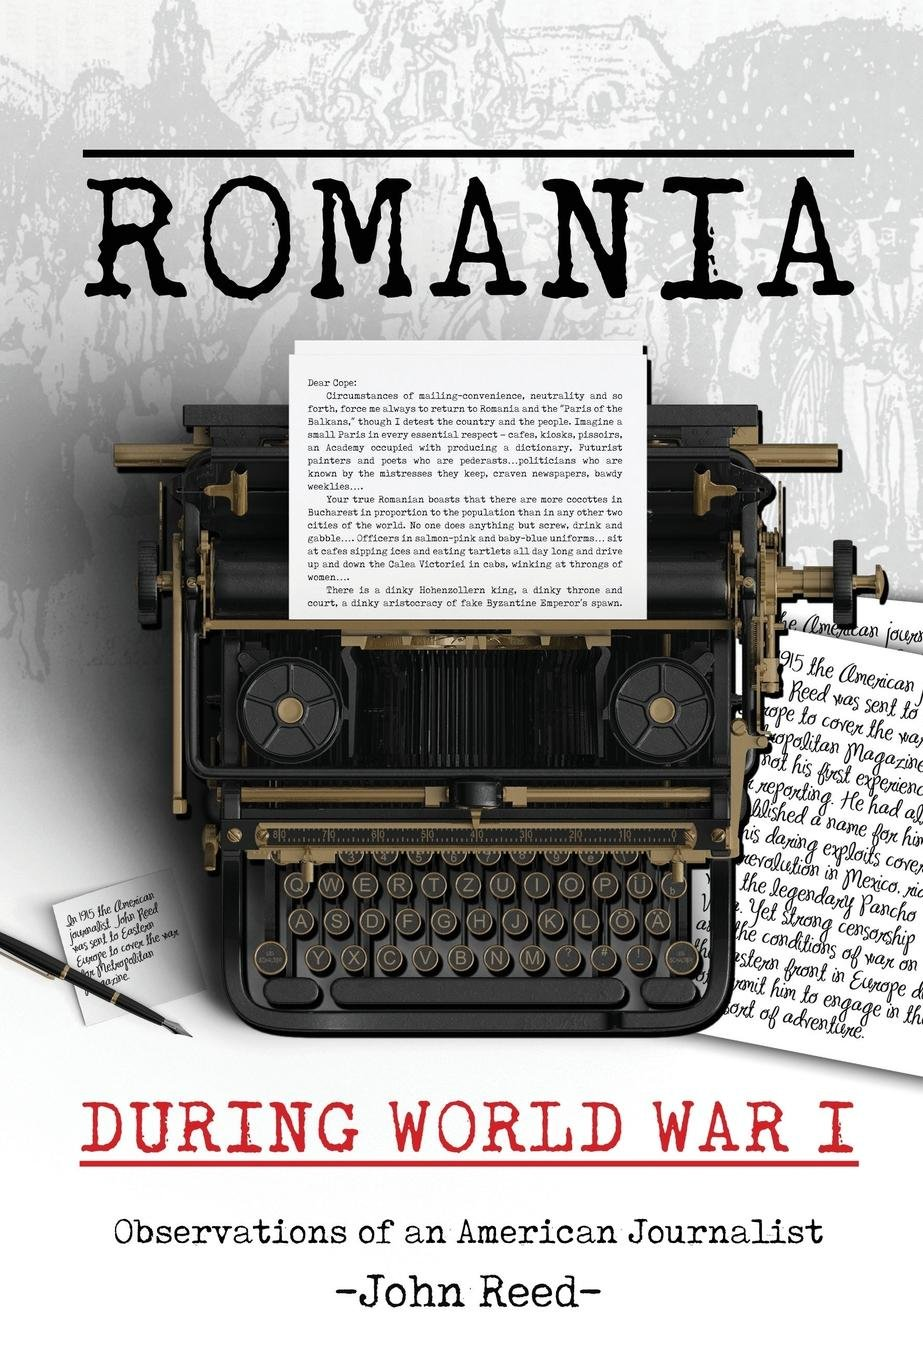 Romania During World War I: Observations of an American Journalist